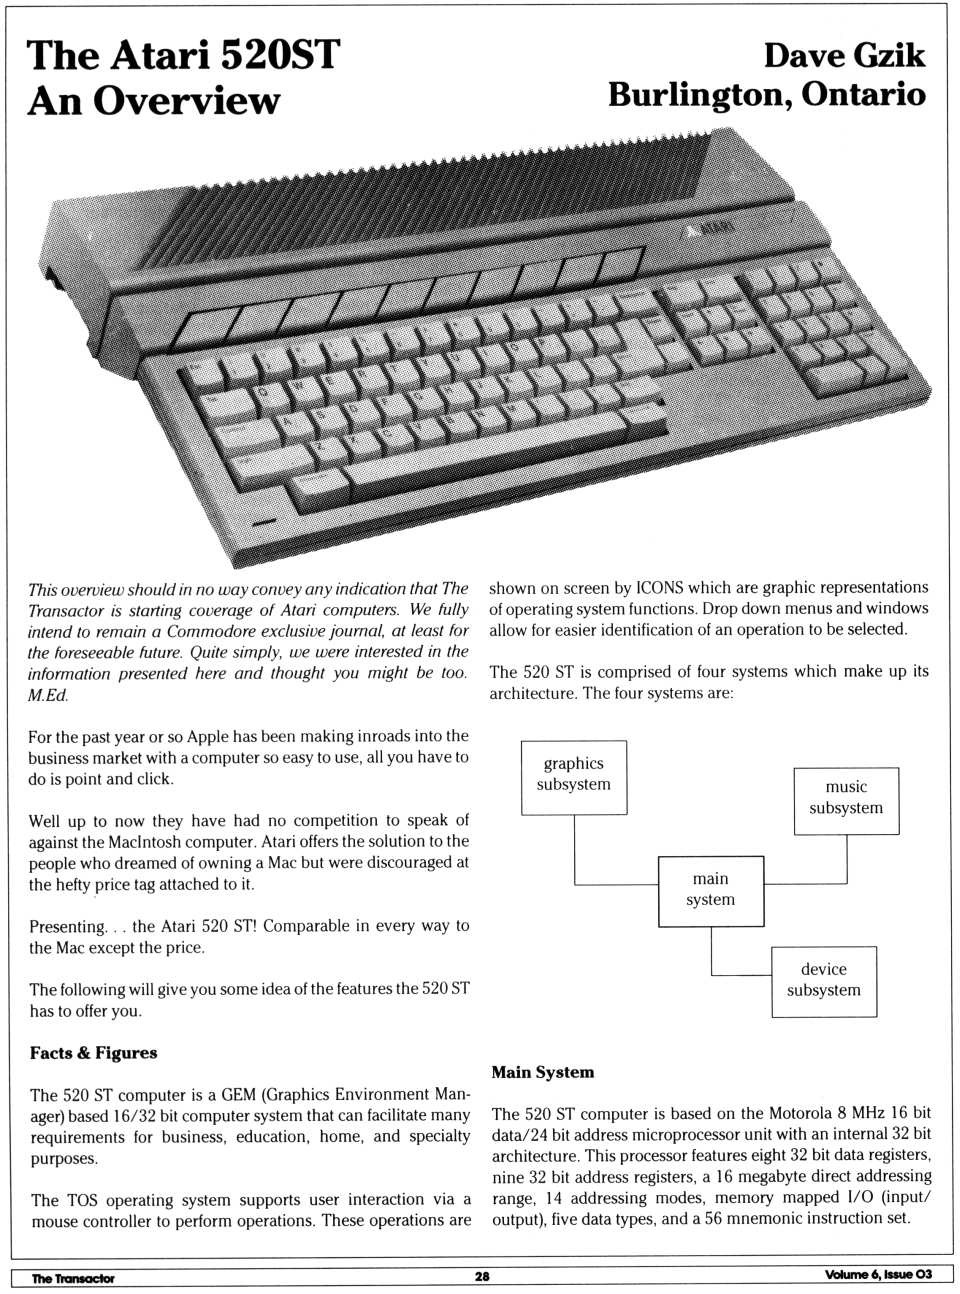 [The Atari 520ST: An Overview (1/2)]